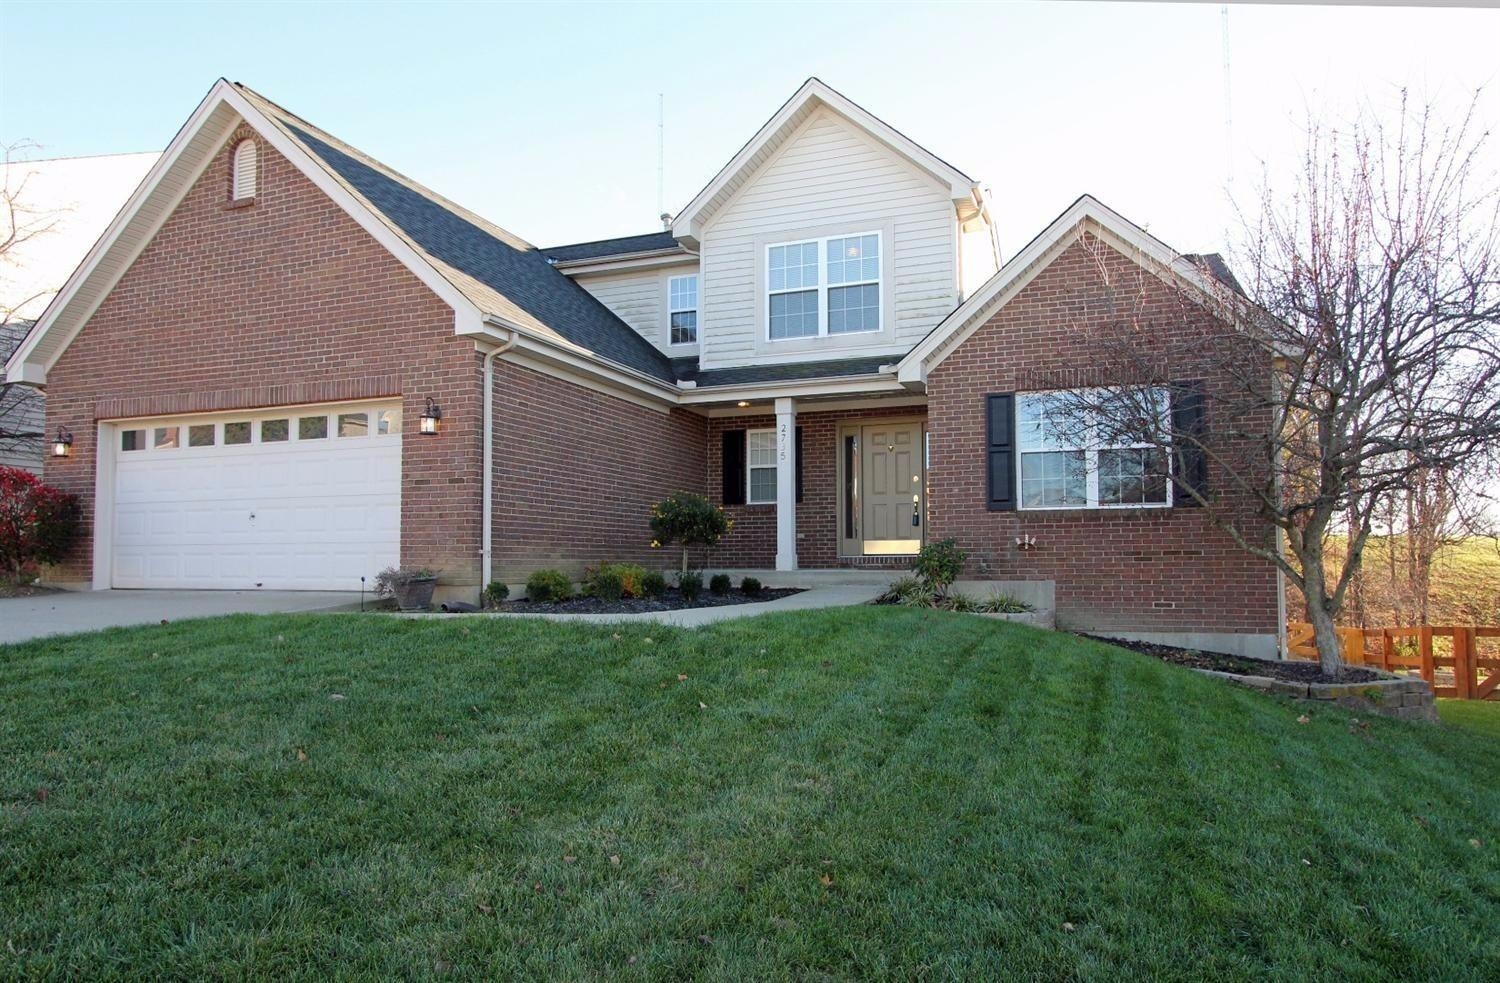 Photo 1 for 2735 Running Creek Dr Florence, KY 41042